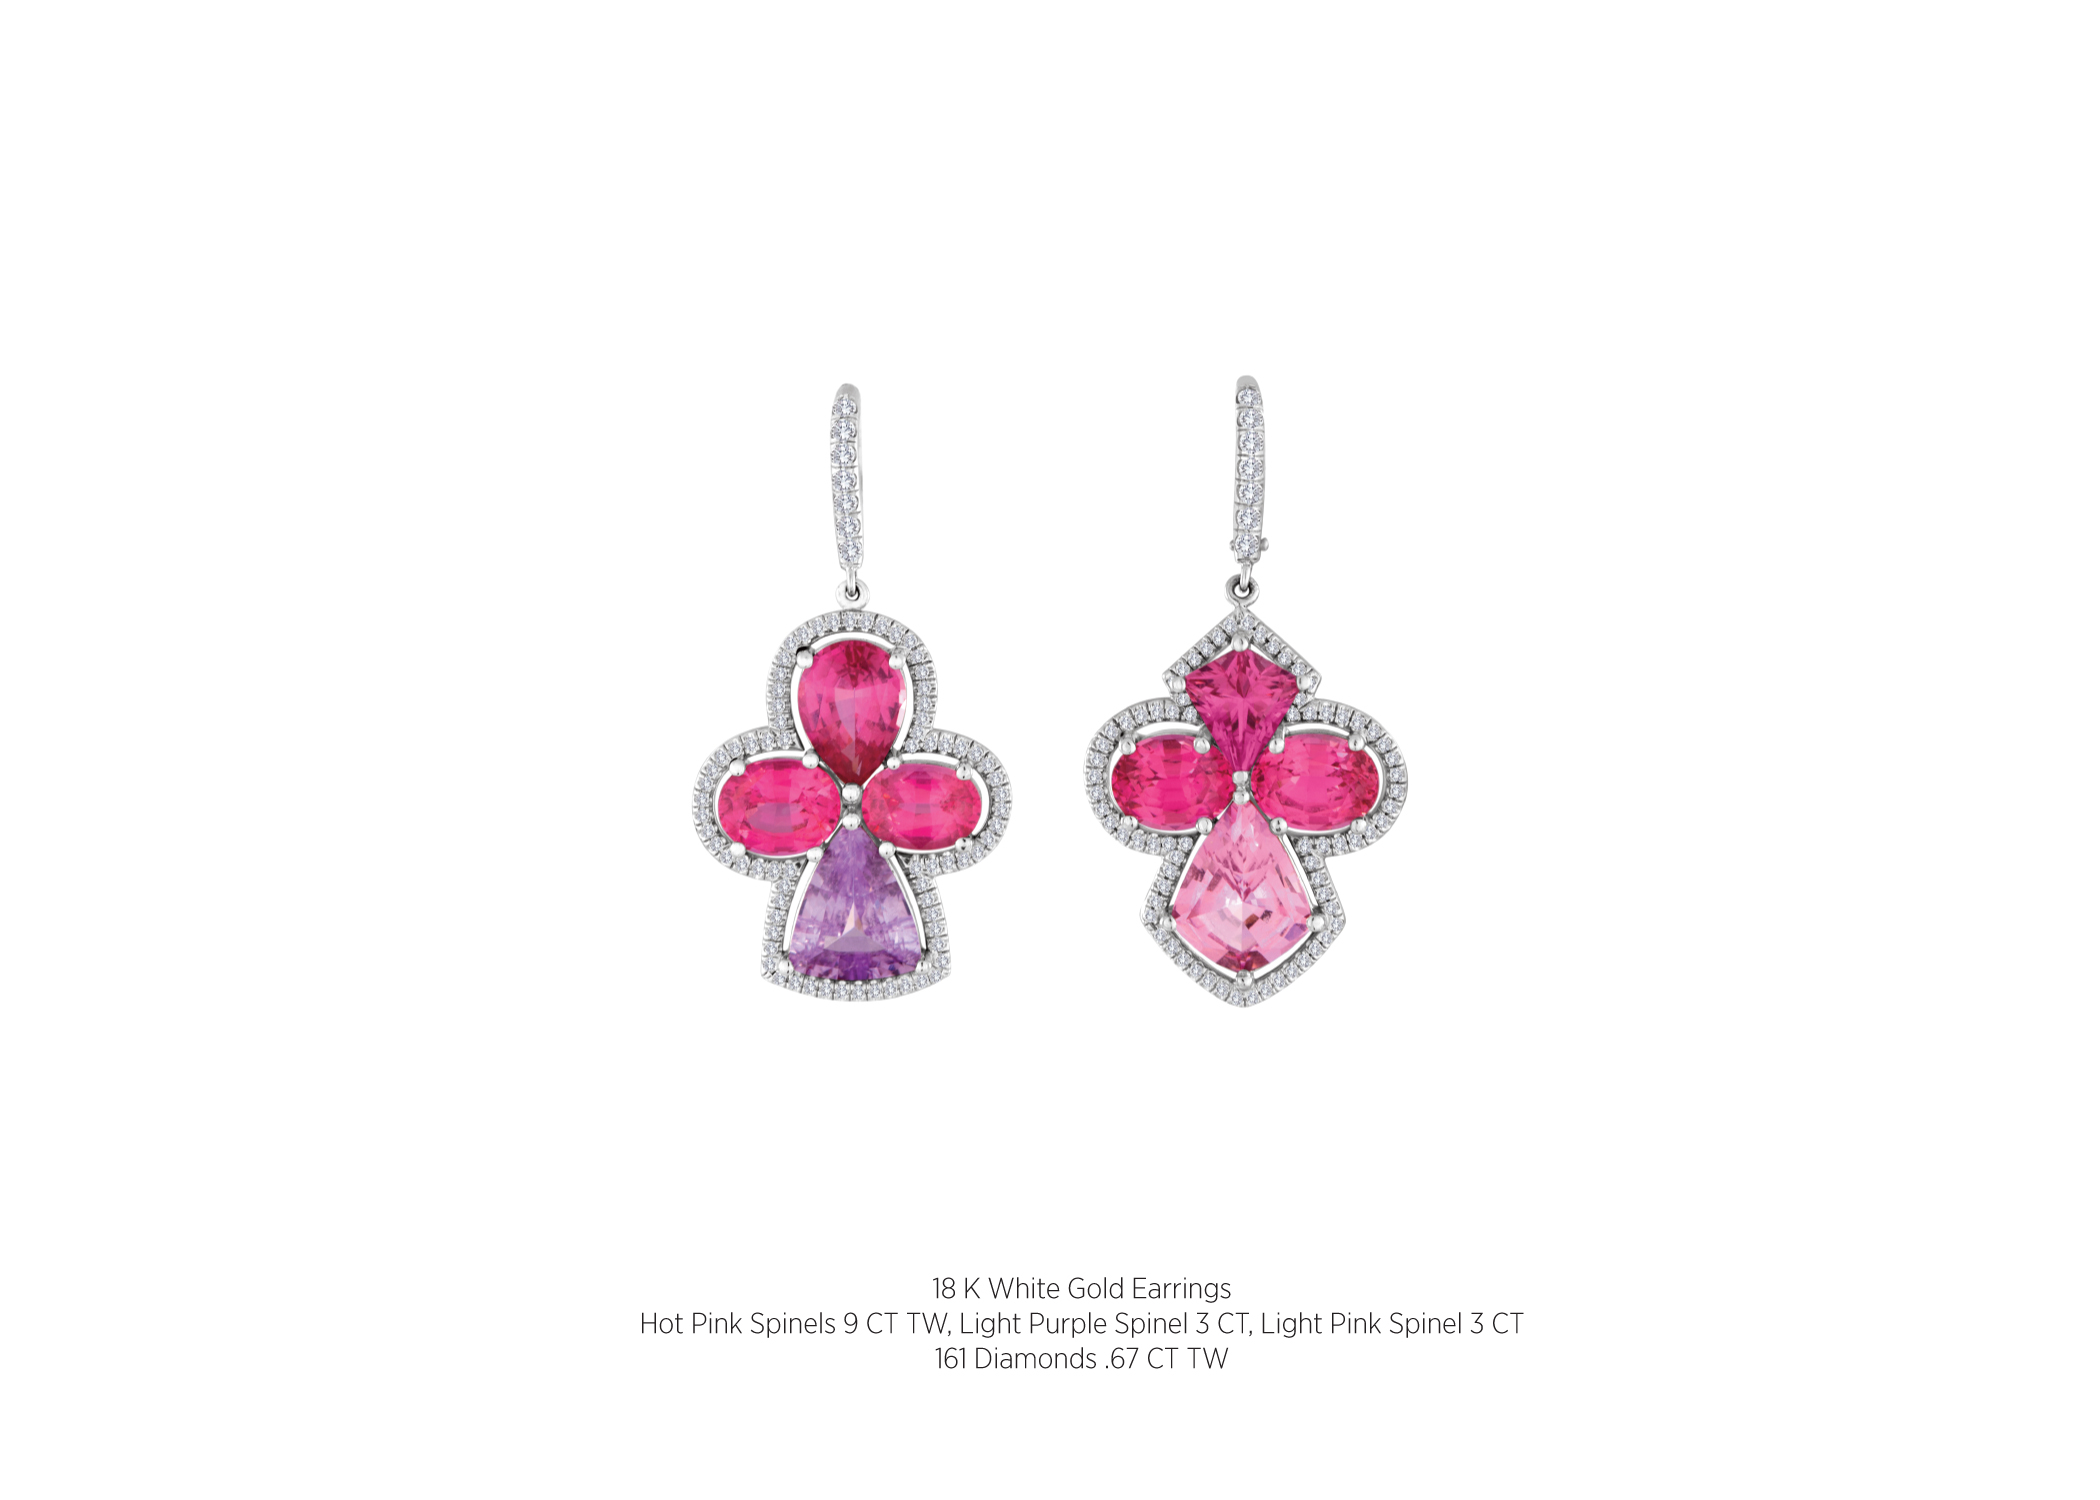 18 K White Gold Earrings Hot Pink Spinels 9 Ct Tw Light Purple Spinel 3 Ct  Light Pink Spinel 3 Ct 161 Diamonds 67 Ct Tw